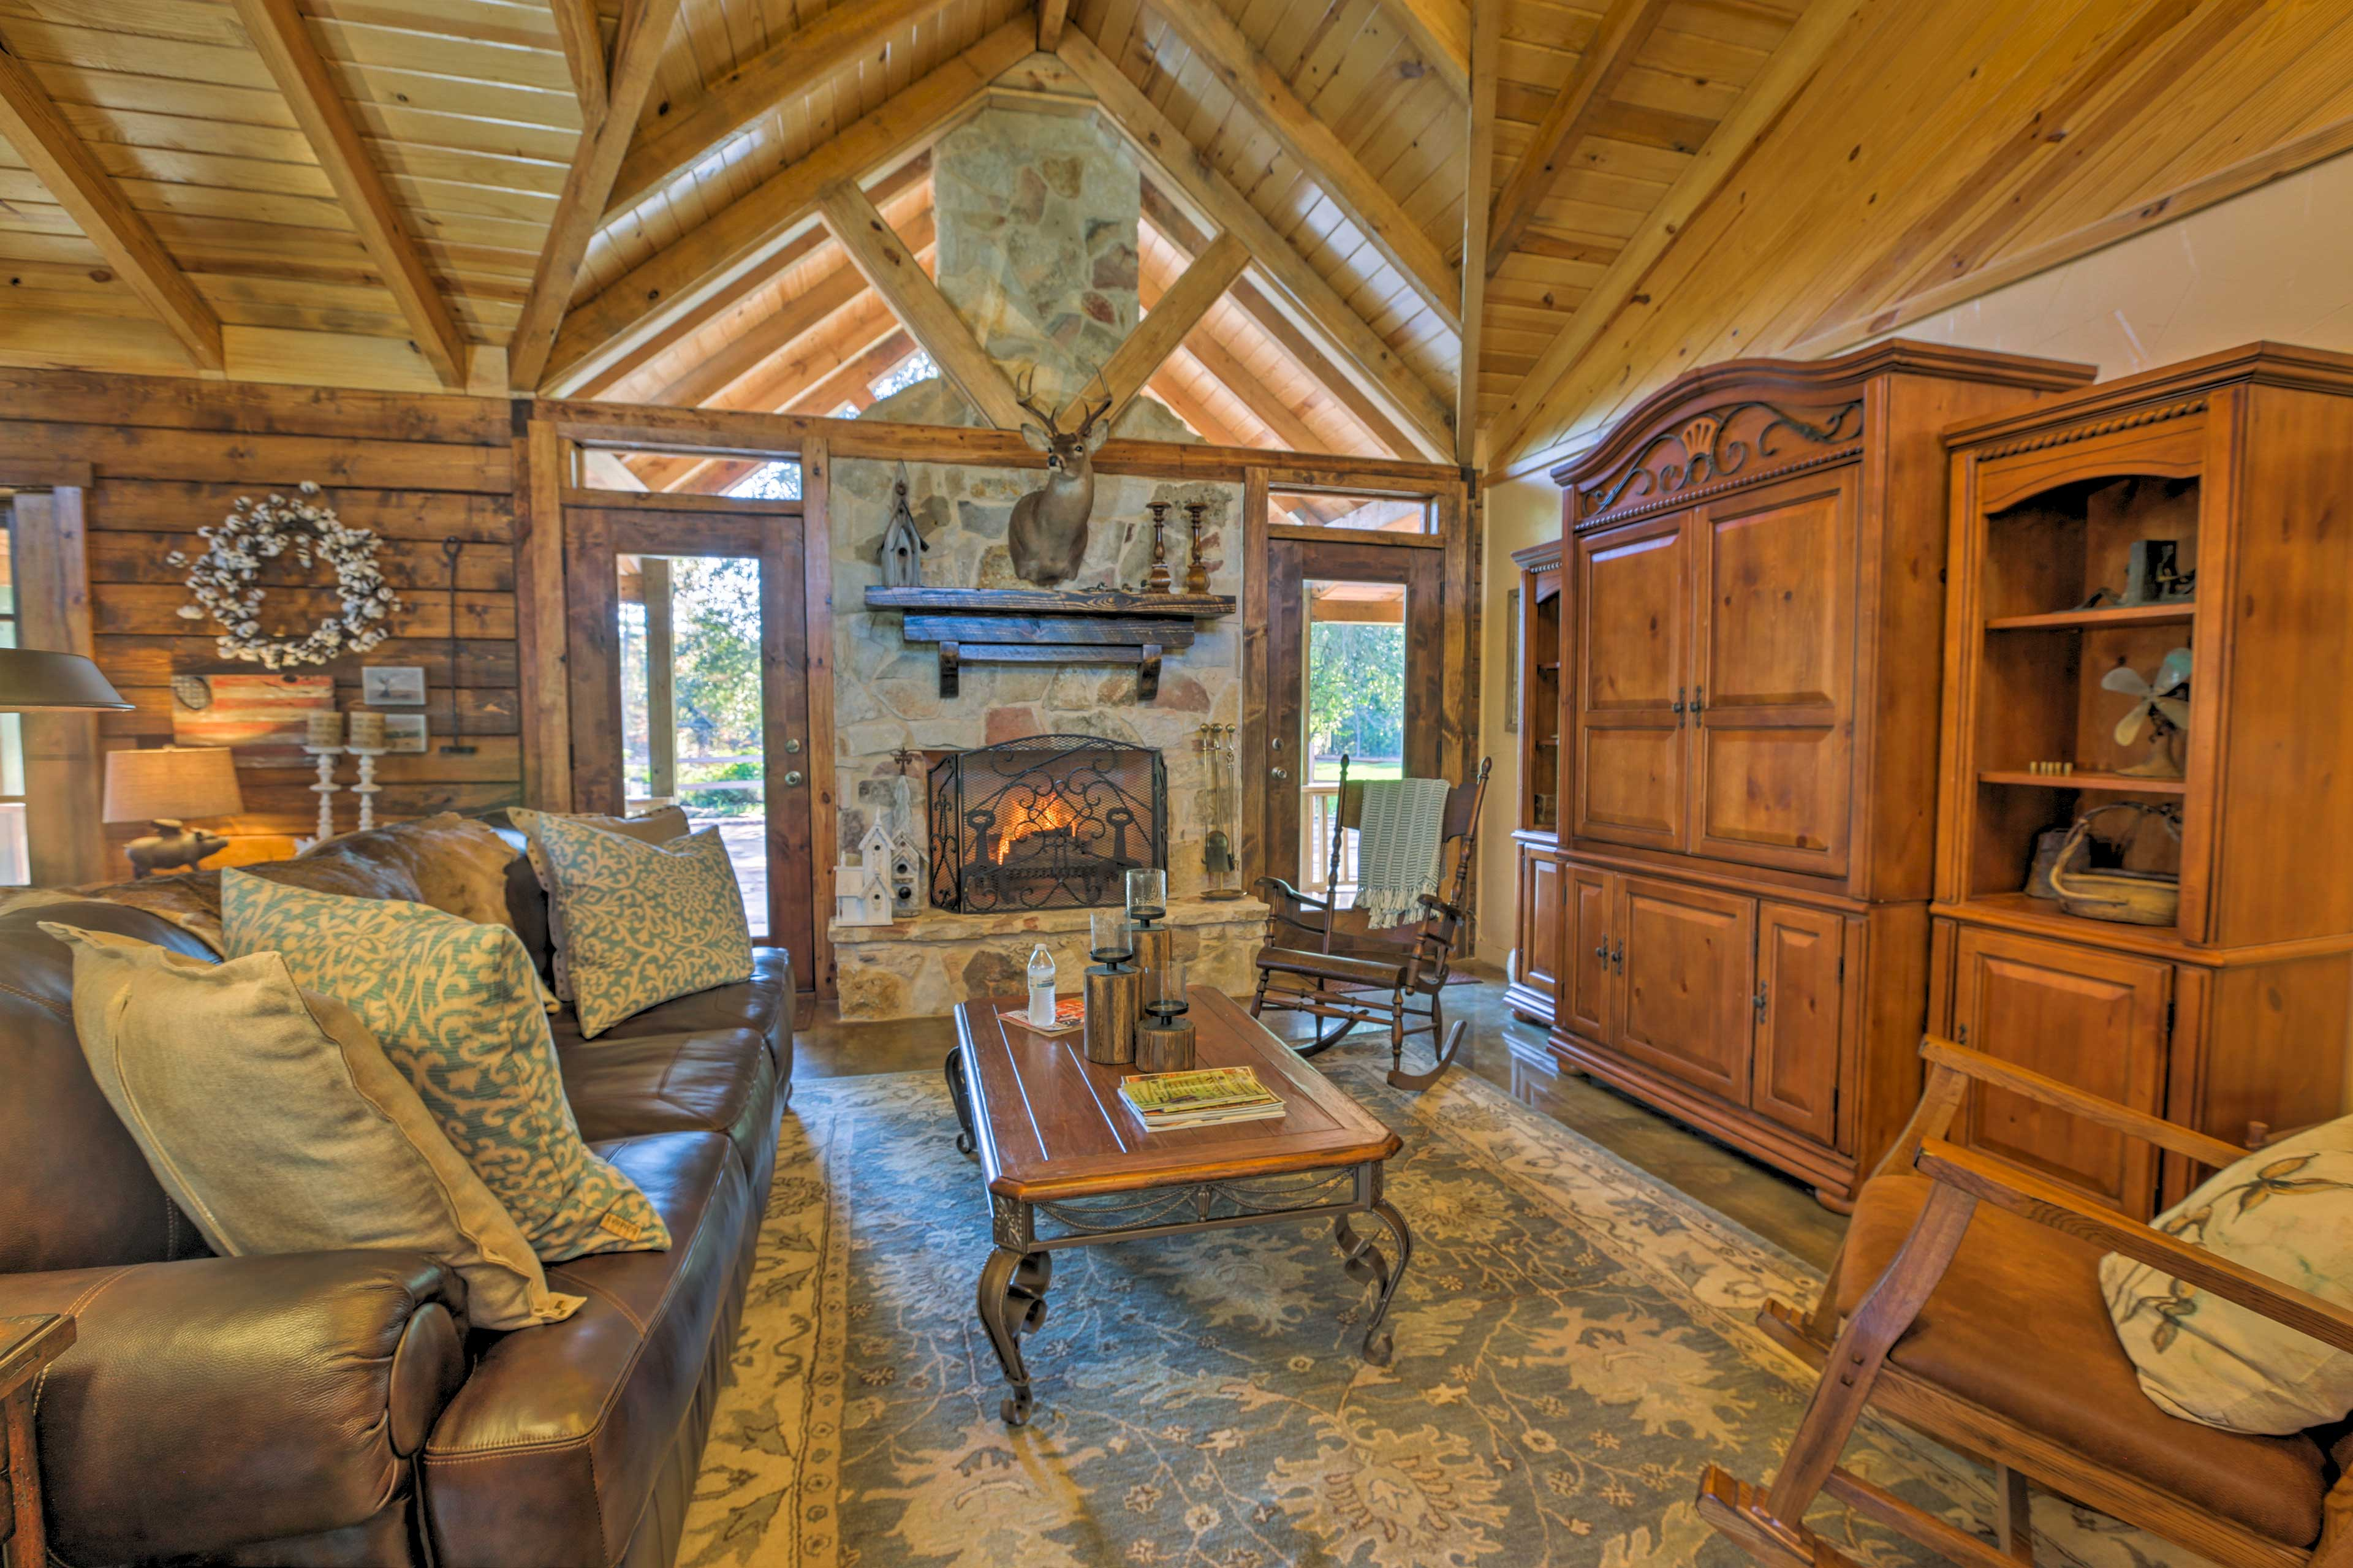 Cozy around the wood-burning fireplace and recount tales from the day!